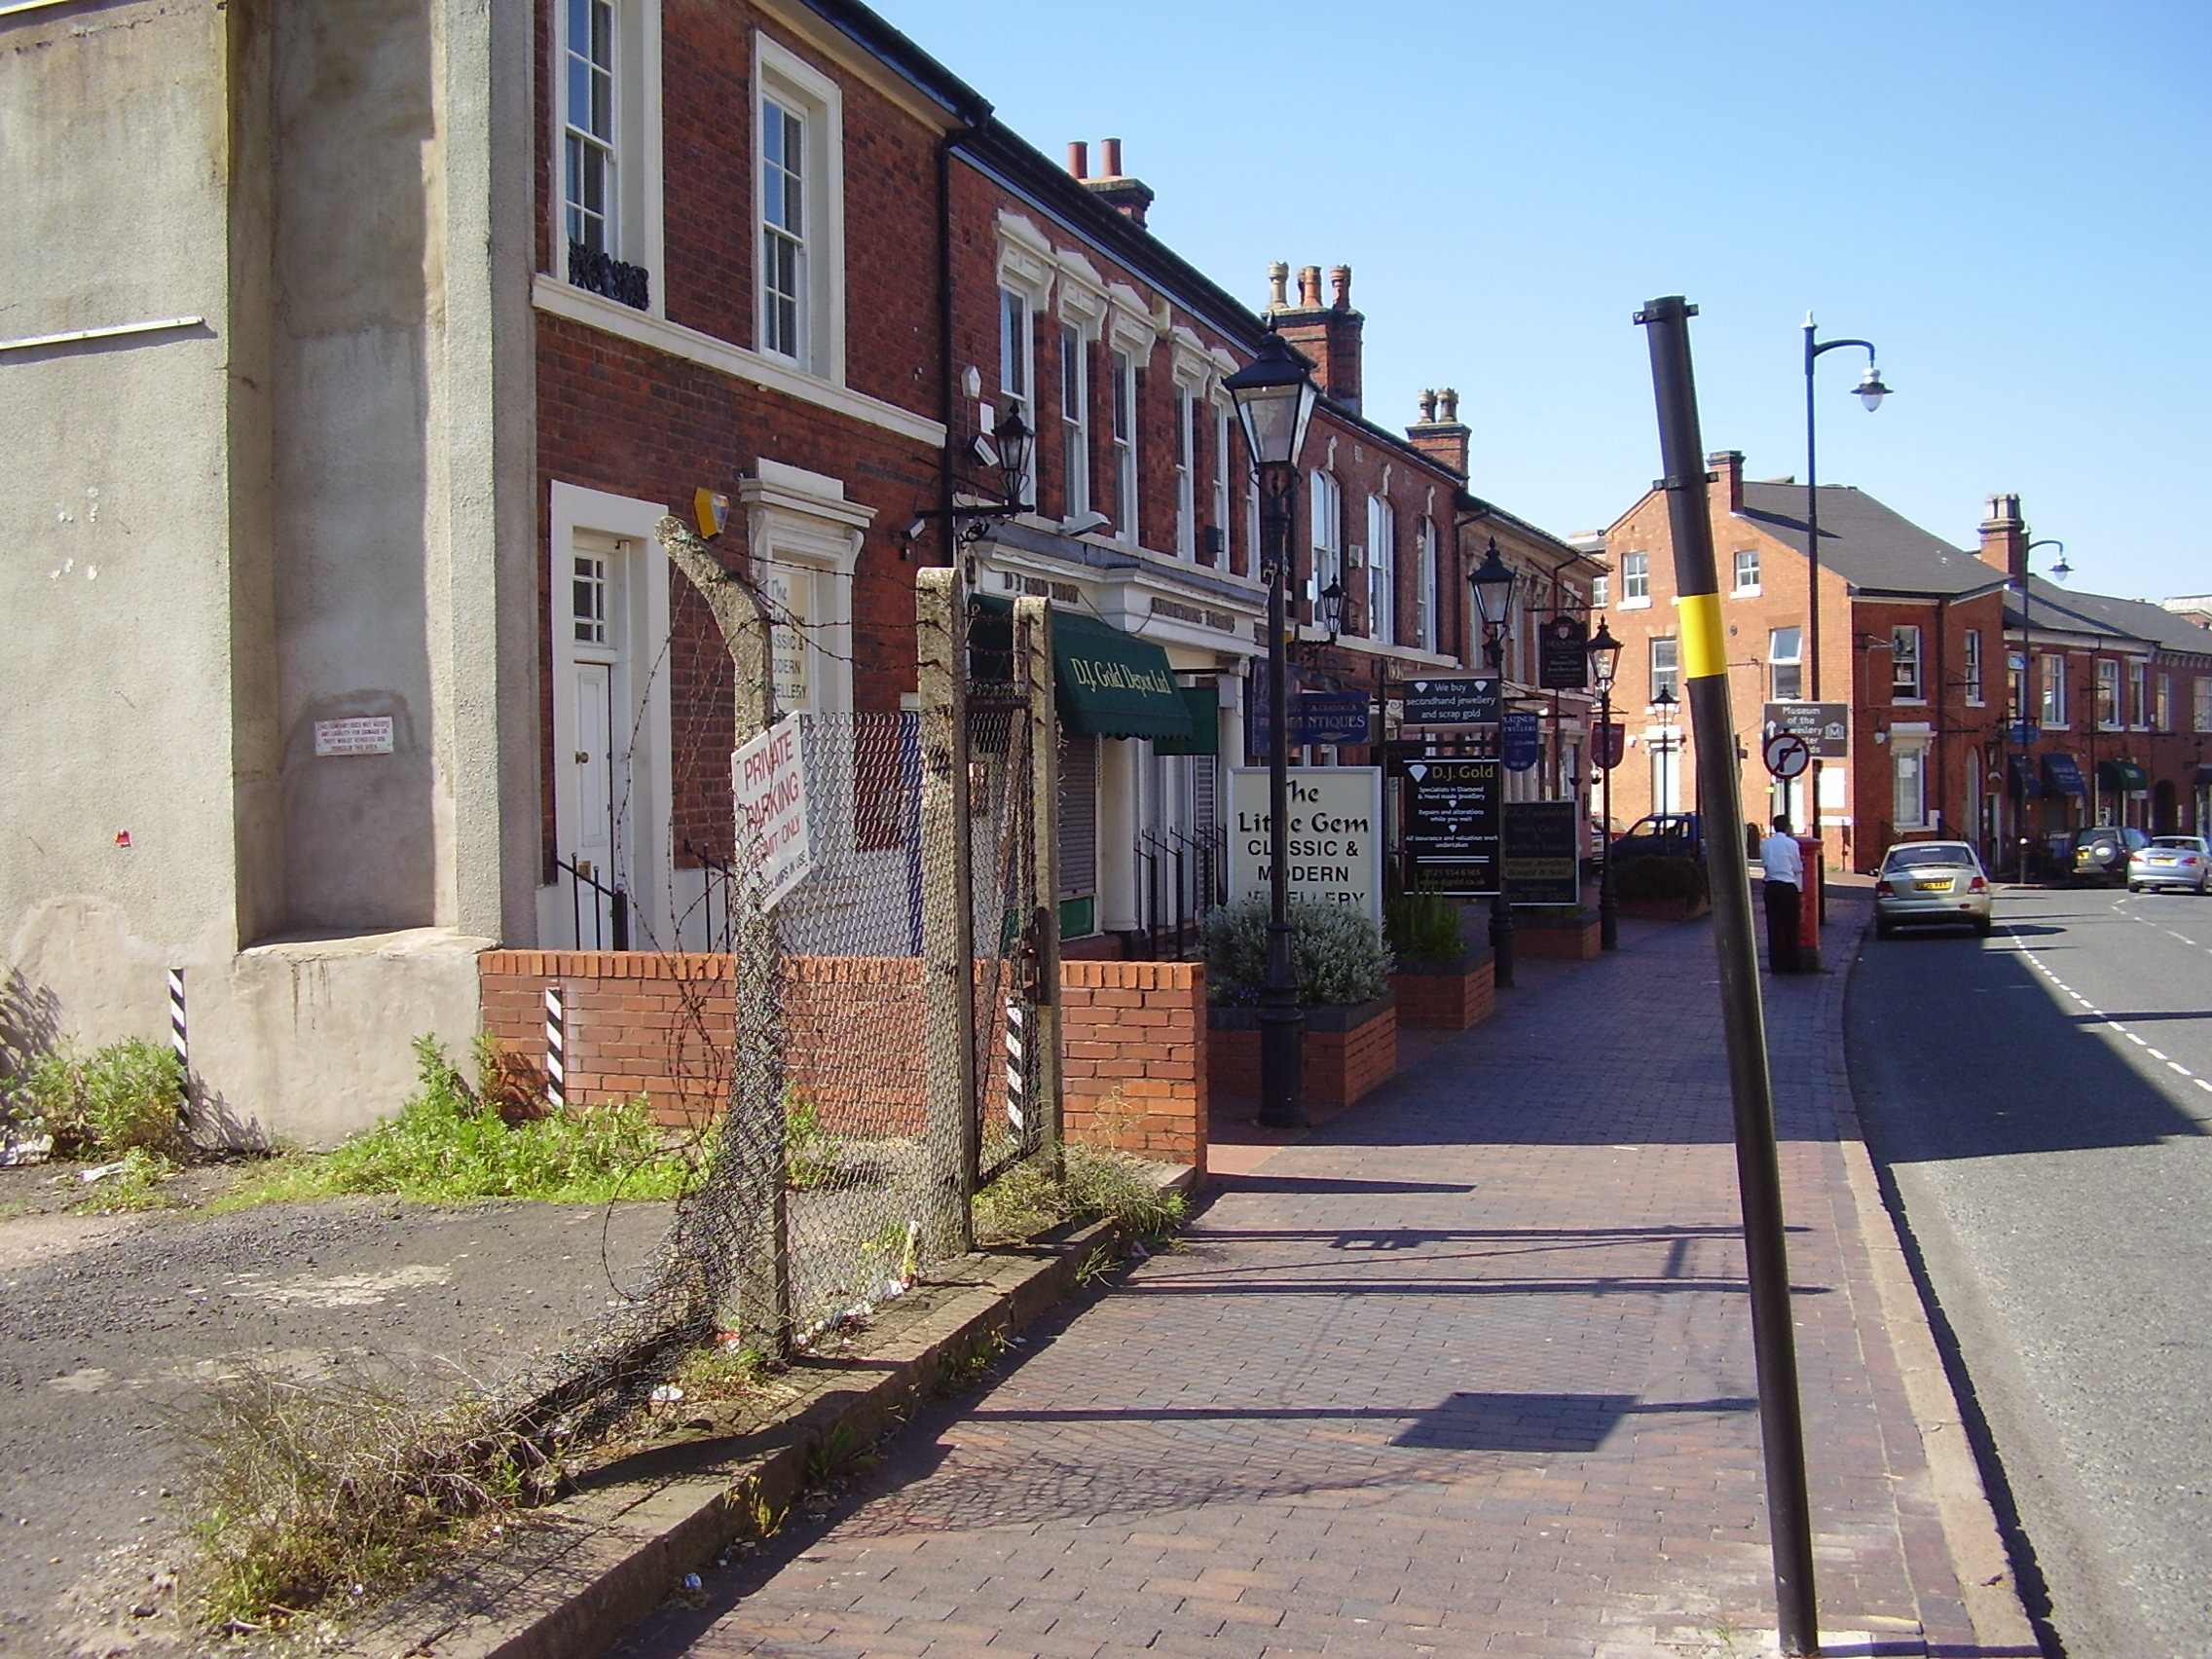 2008 Jewellery Shops in Vyse St, Jewellery Quarter Birmingham